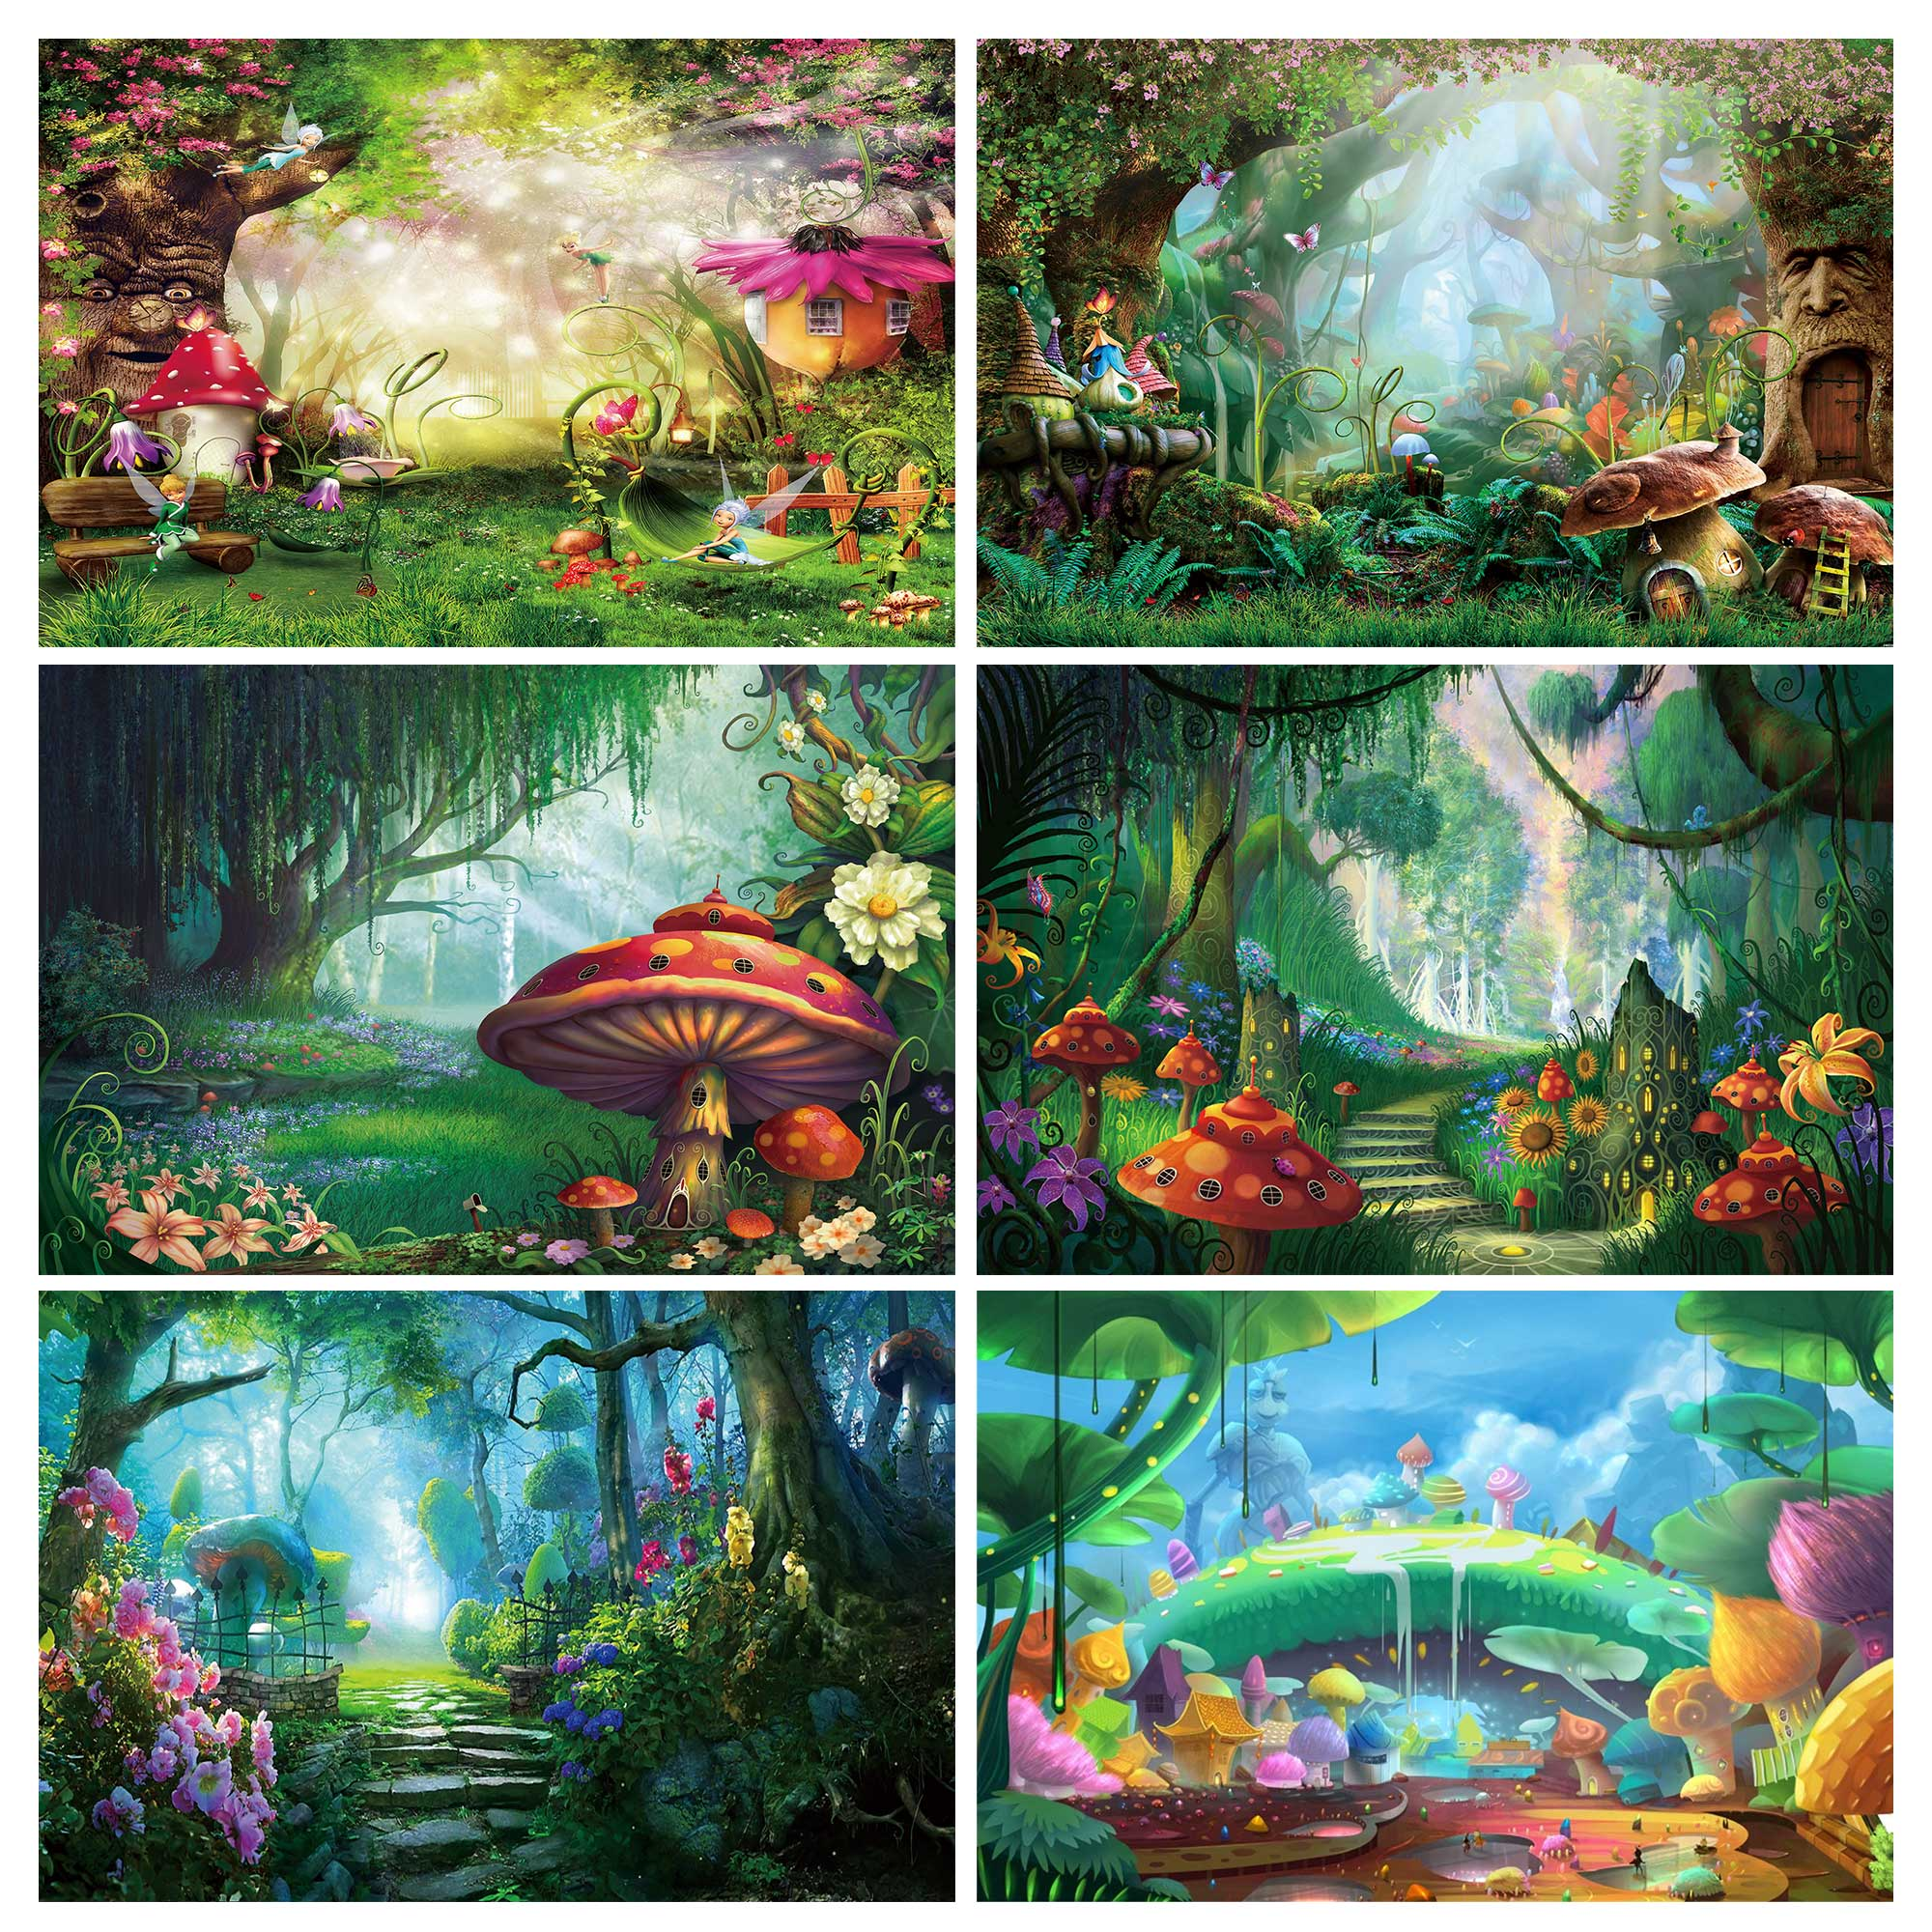 NeoBack Vinyl Enchanted Magic Forest Mushroom Baby Fairy Tale Land Princess Birthday Photocall Banner Photography Backgrounds